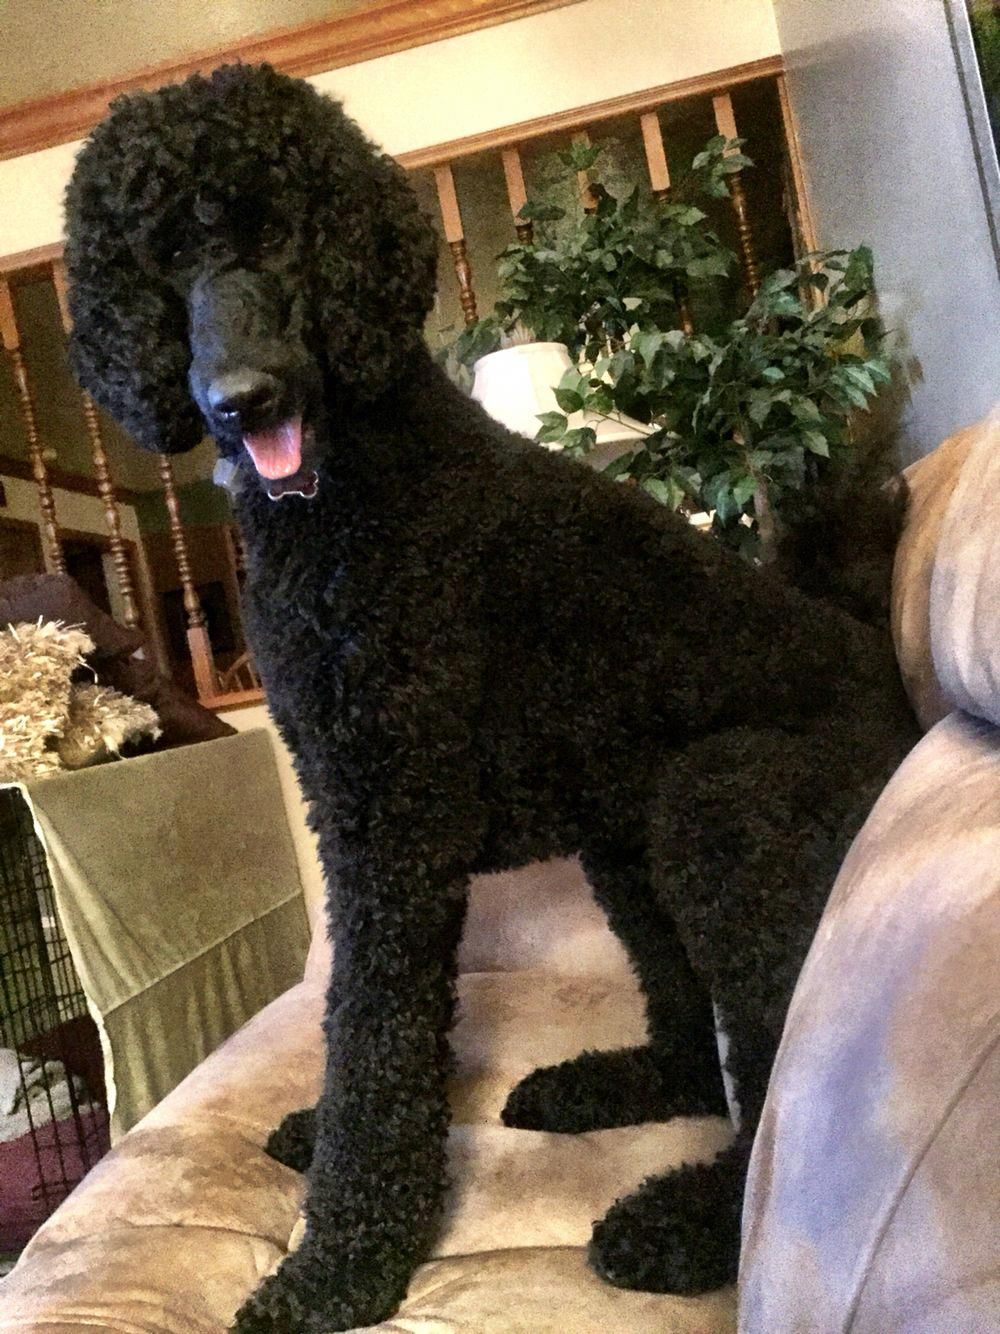 Everything About The Athletic Poodle Puppy And Kids #poodlepup #poodlerescue #toypoodle